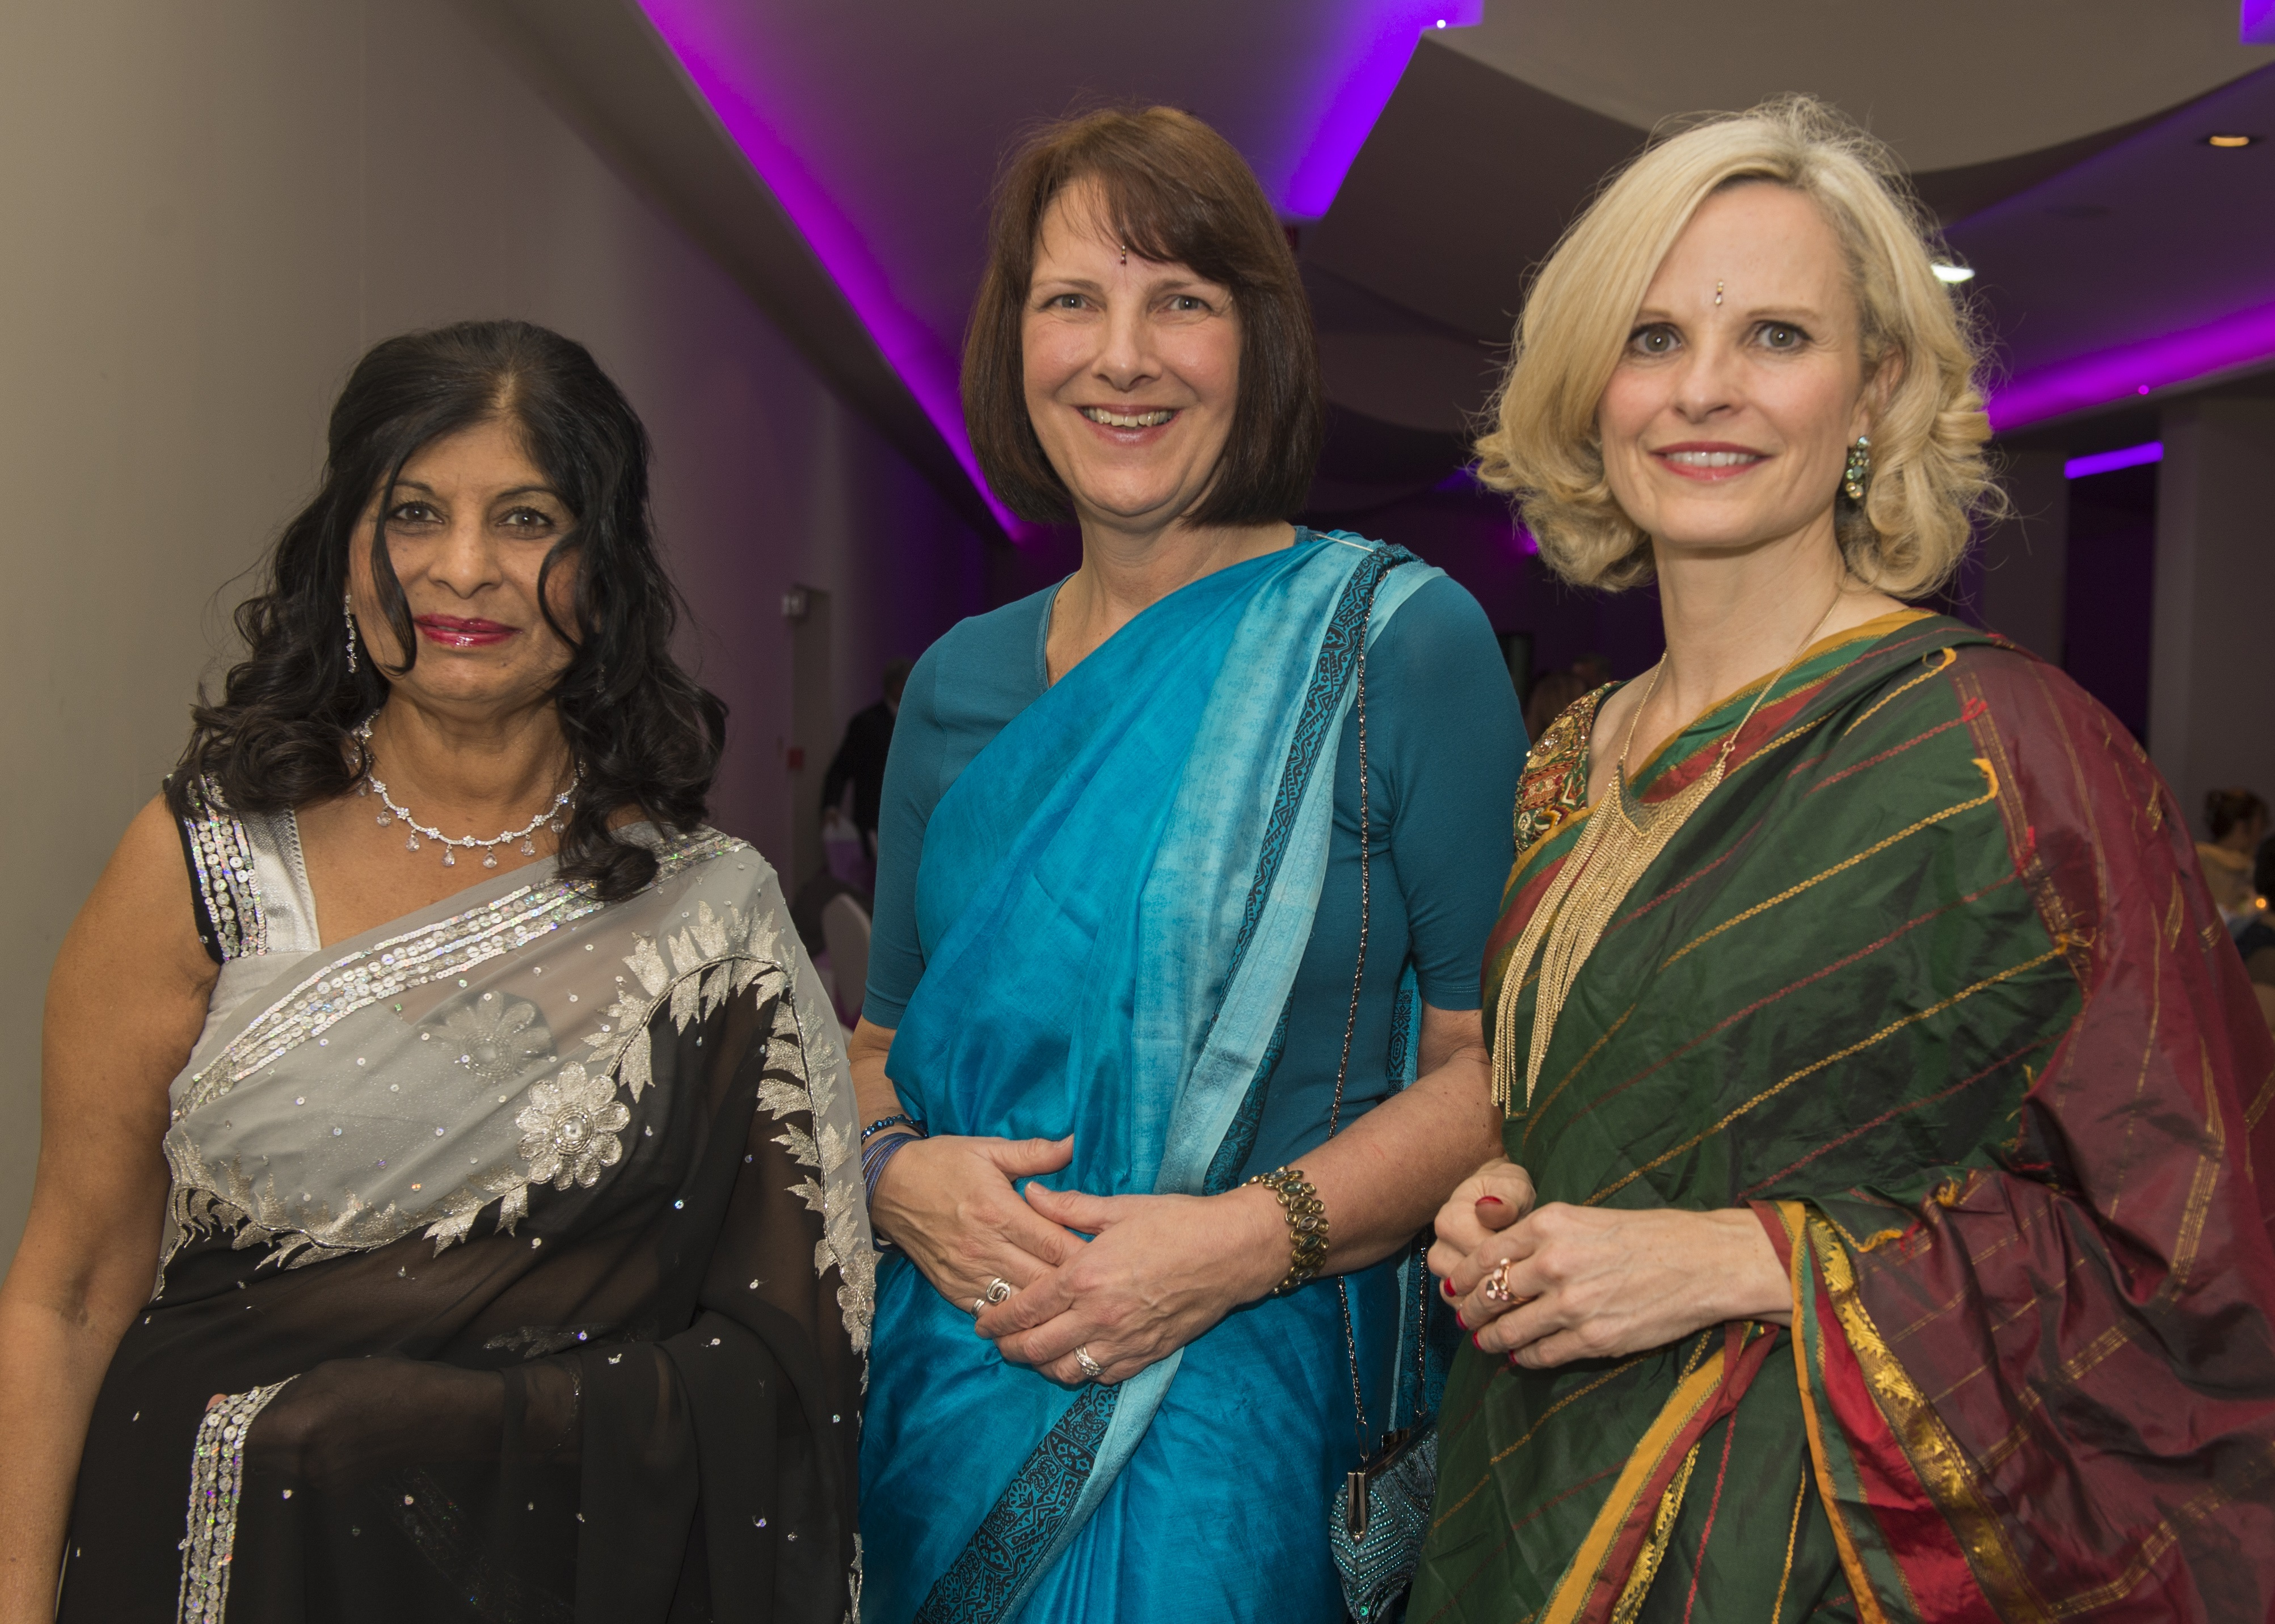 Bhayani Law Bollywood Ball held at Arooj, Attercliffe Road in Sheffield Saturday 7th November 2015 Aruna Bhayani with Bhayani Law associates Lorna Byrne and Caroline Parry